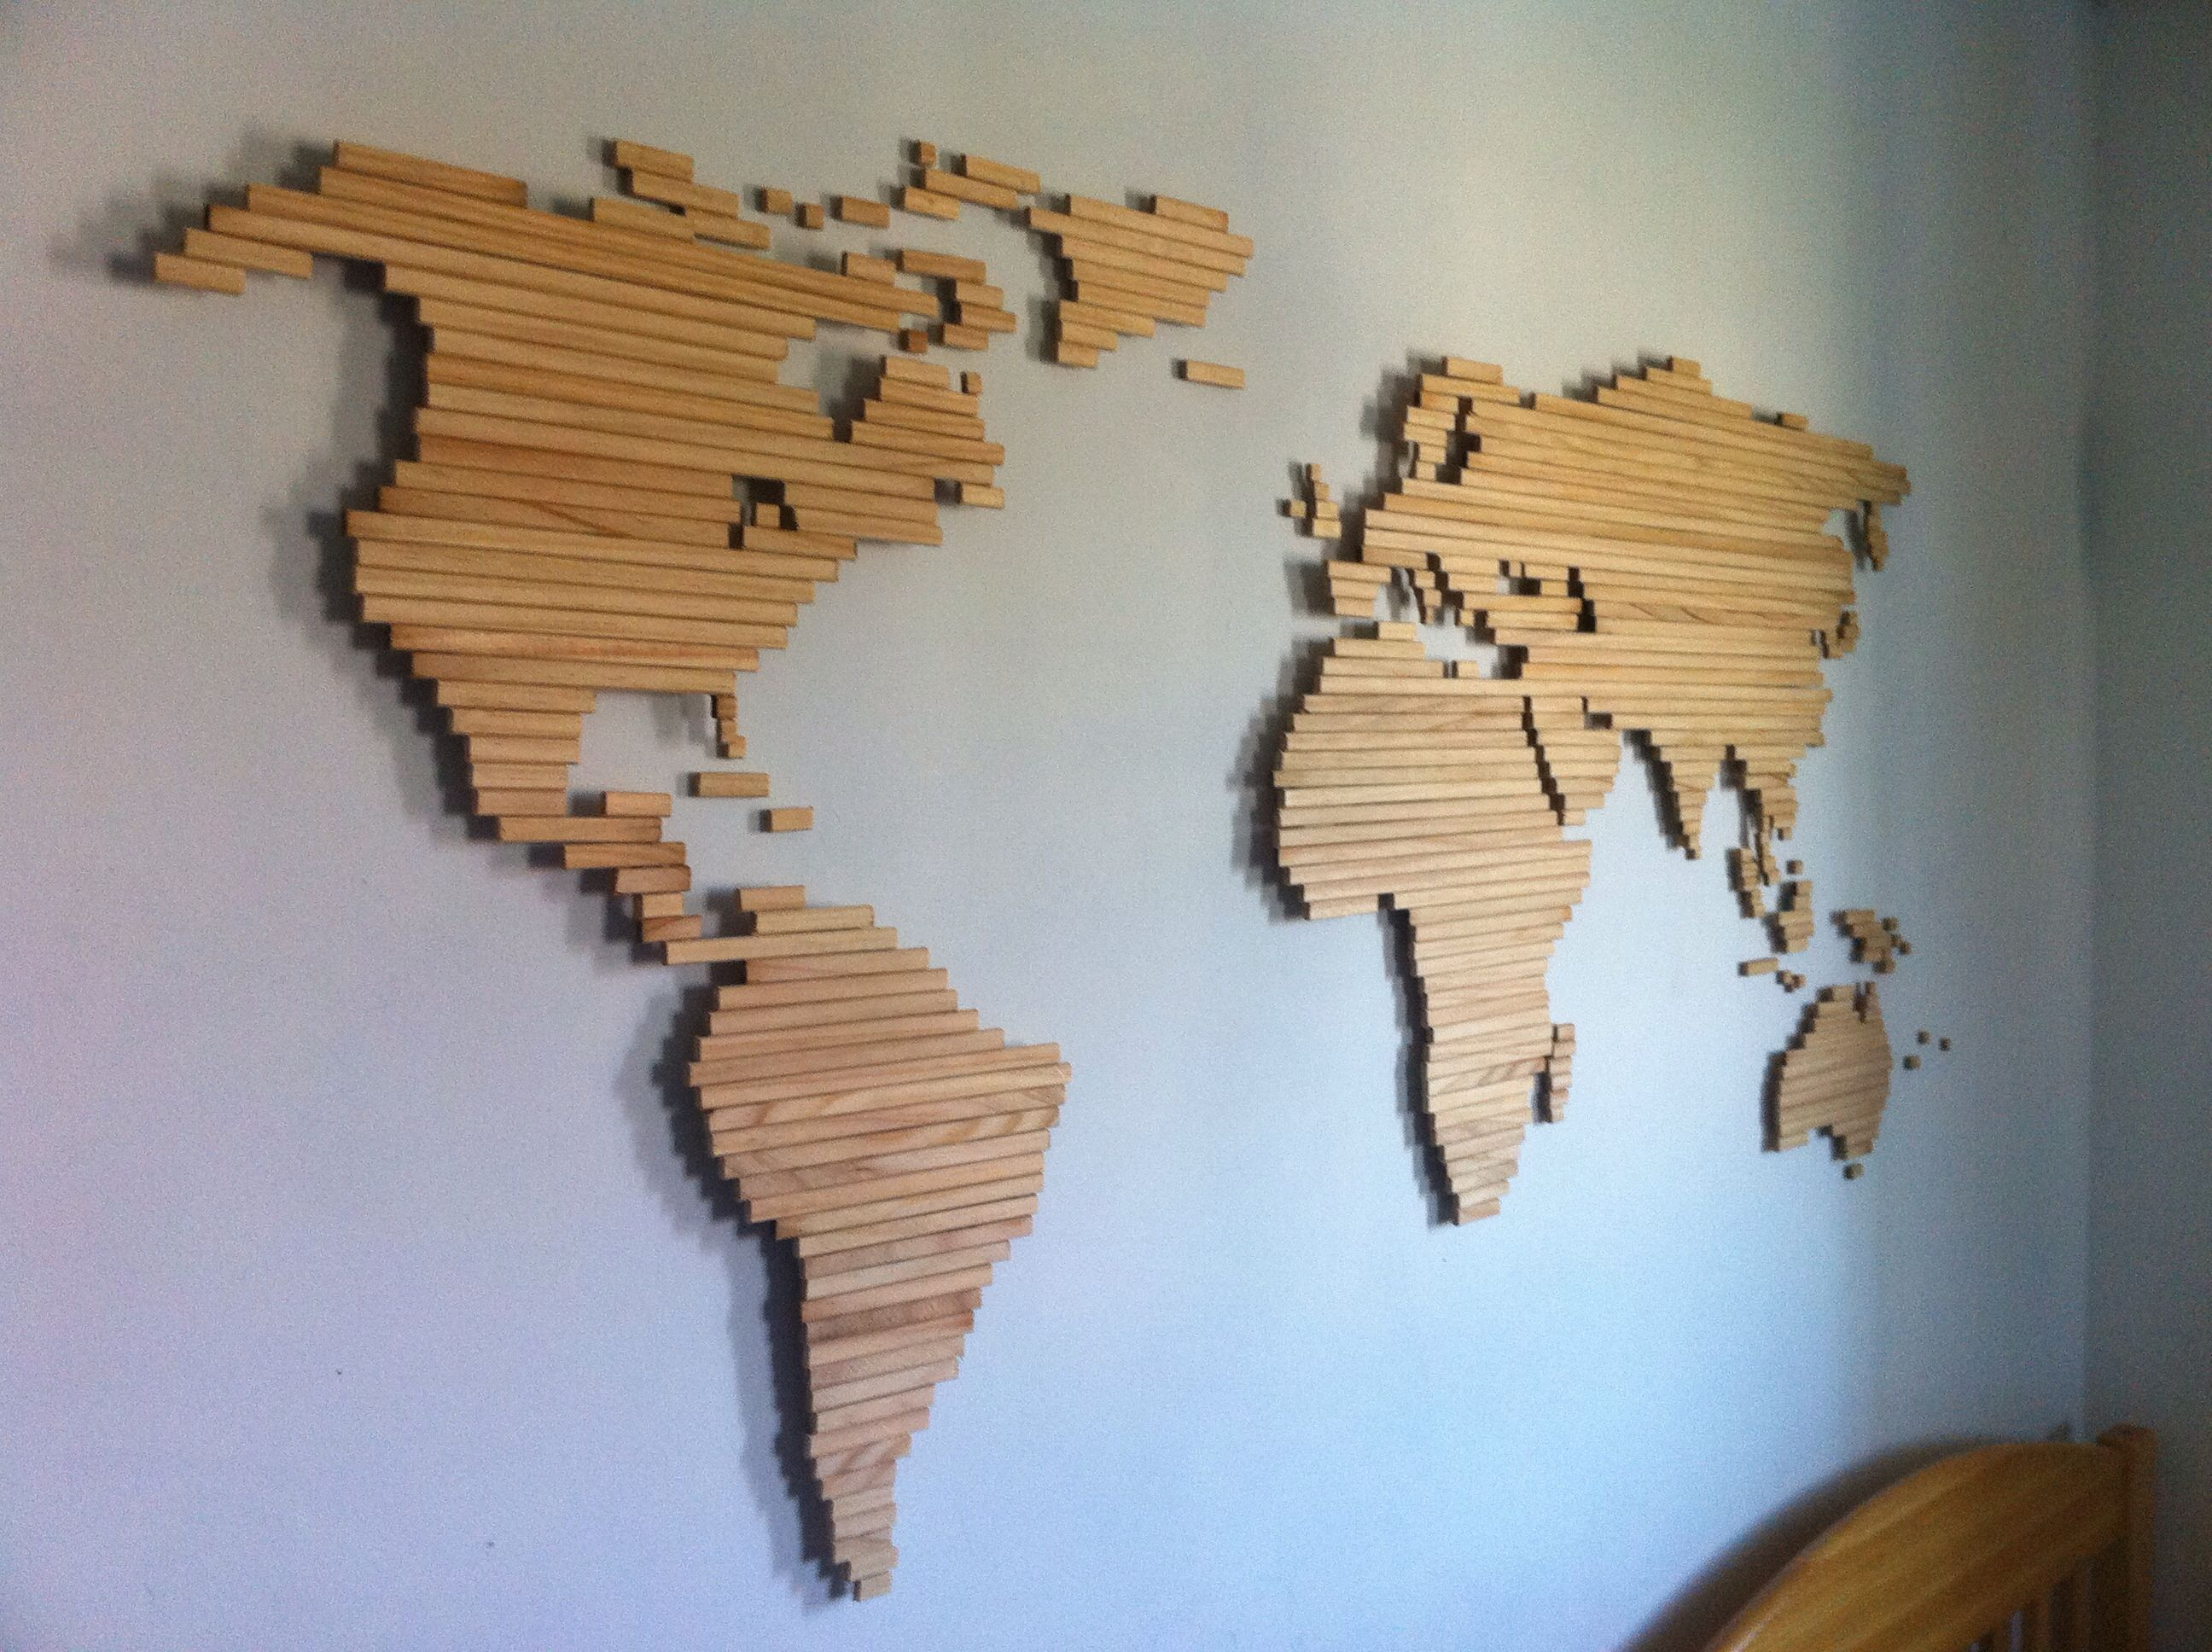 Wood stick world map natural wood colour great way to have a map wood stick world map natural wood colour great way to have a map in gumiabroncs Gallery